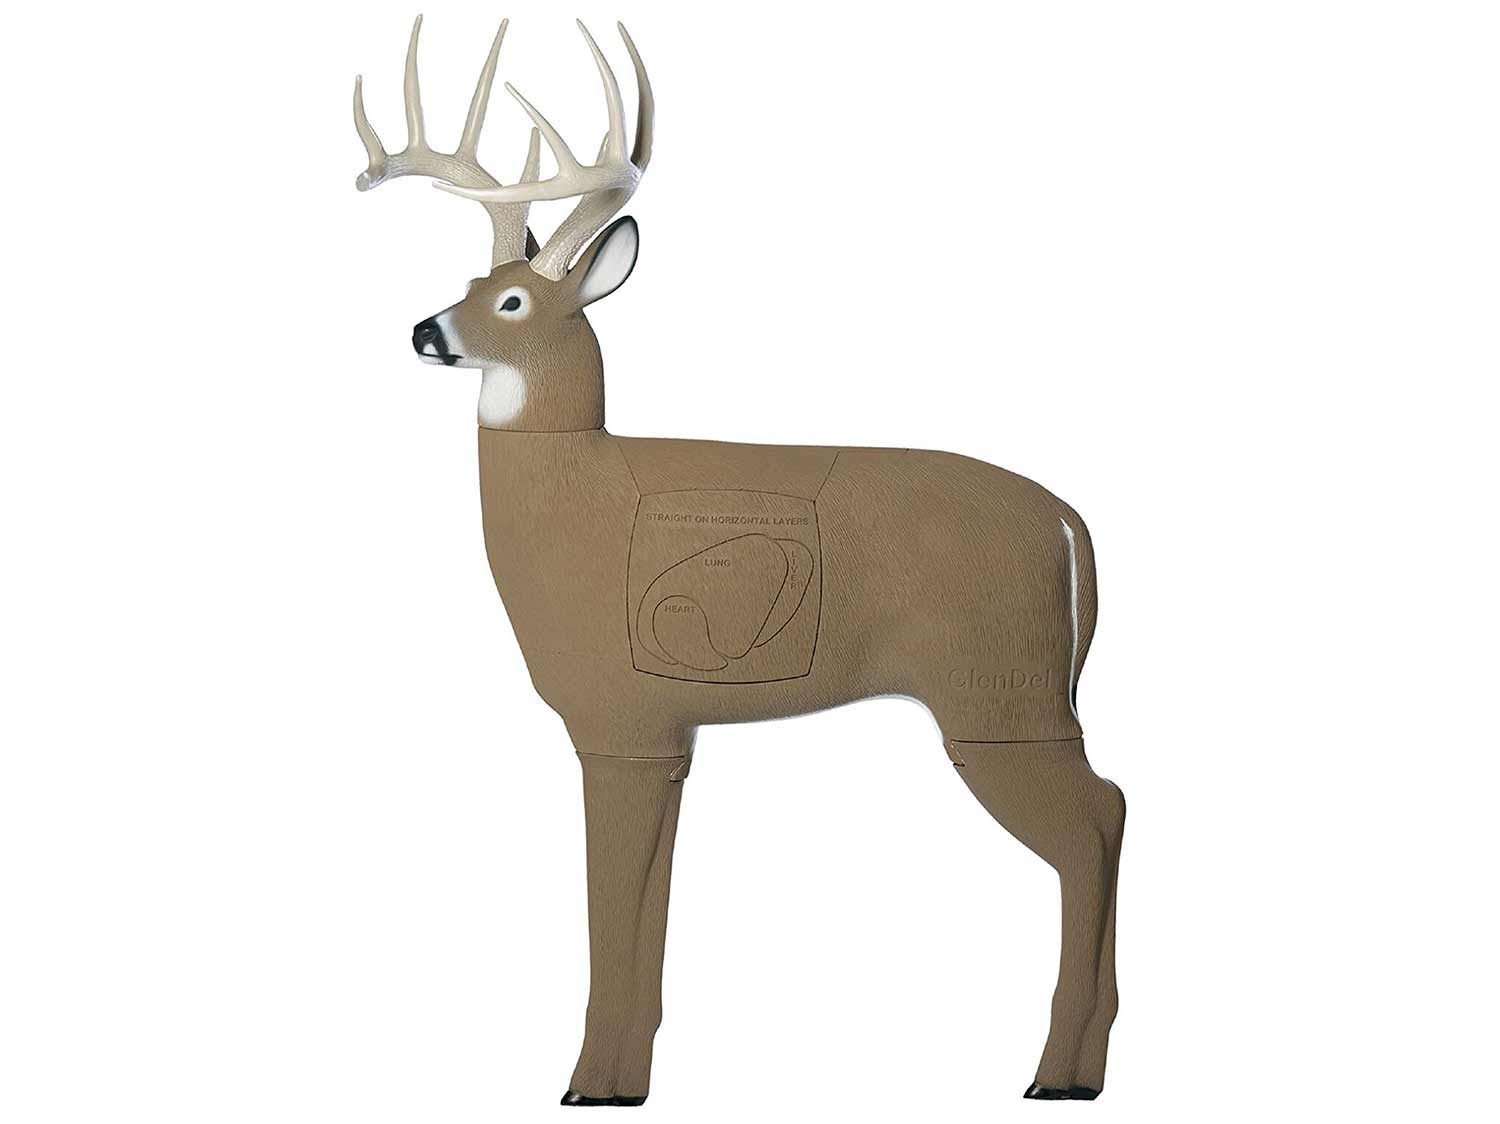 GlenDel Buck 3D Archery Target with Replaceable Insert Core